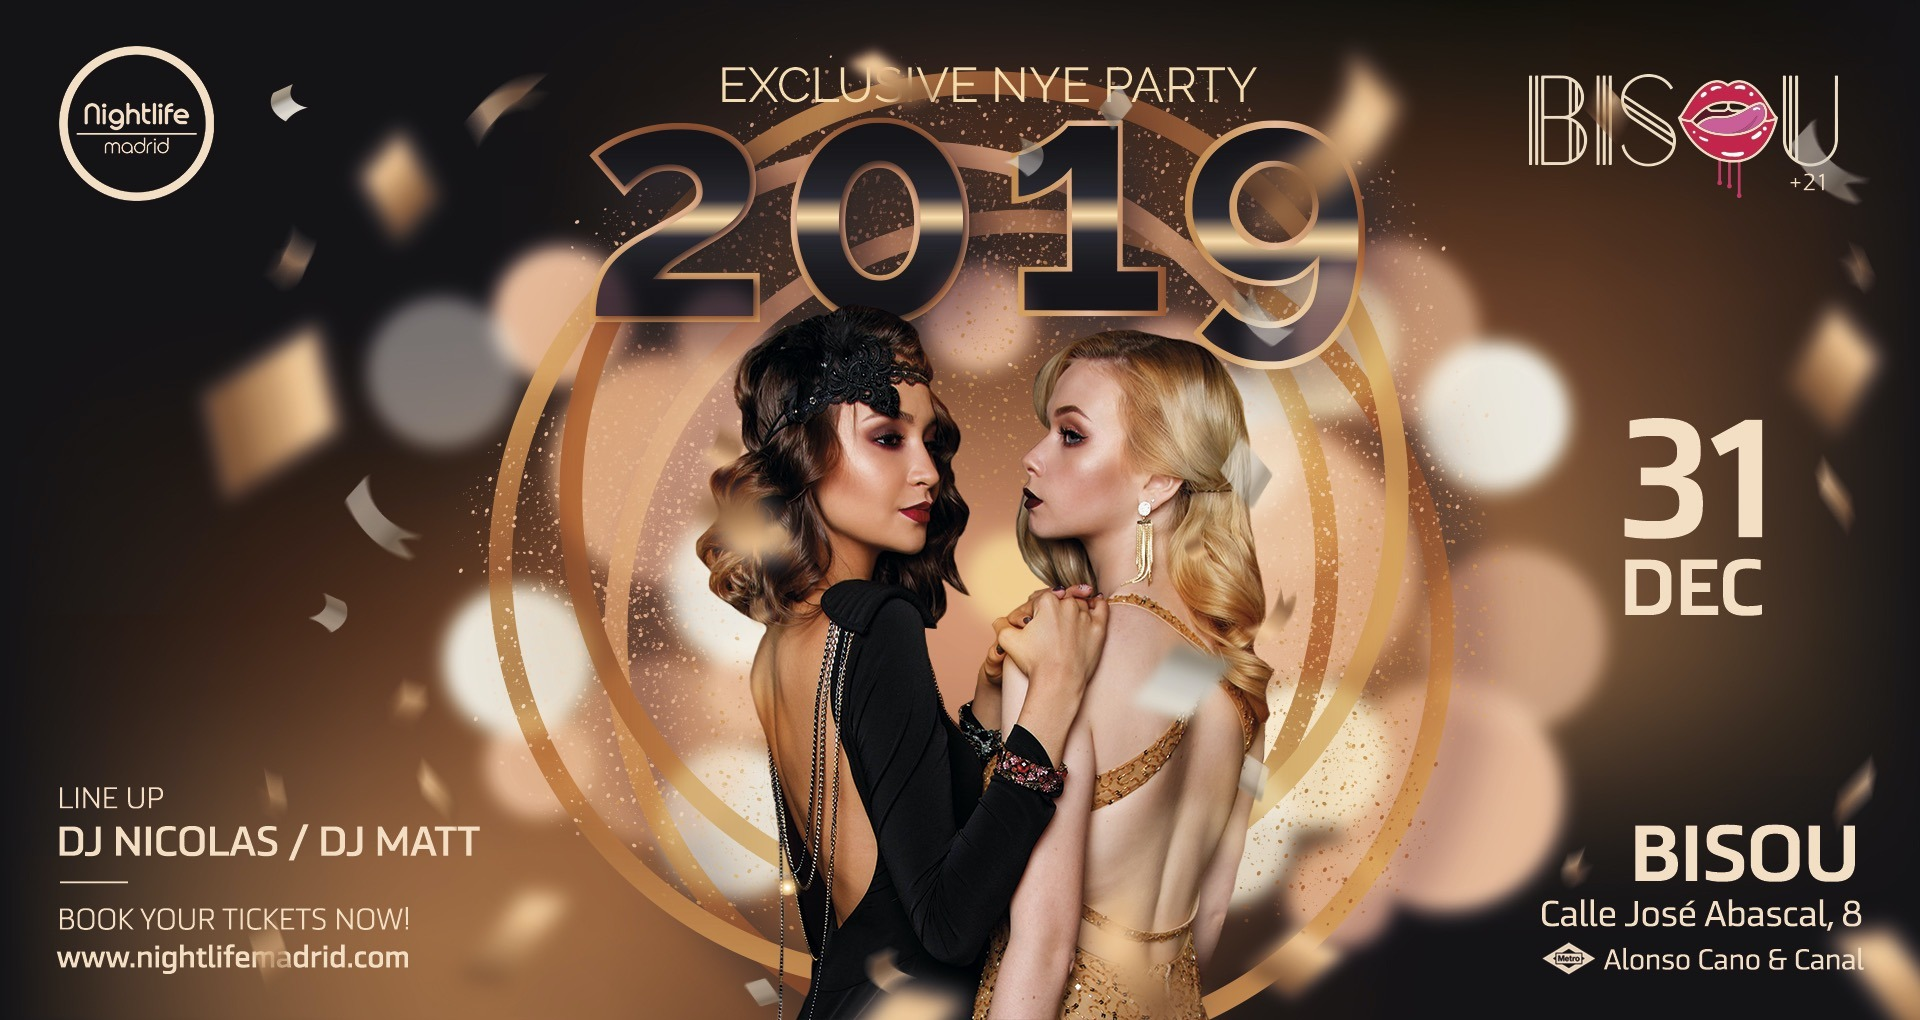 New Year's Eve at Bisou - Club Bisou